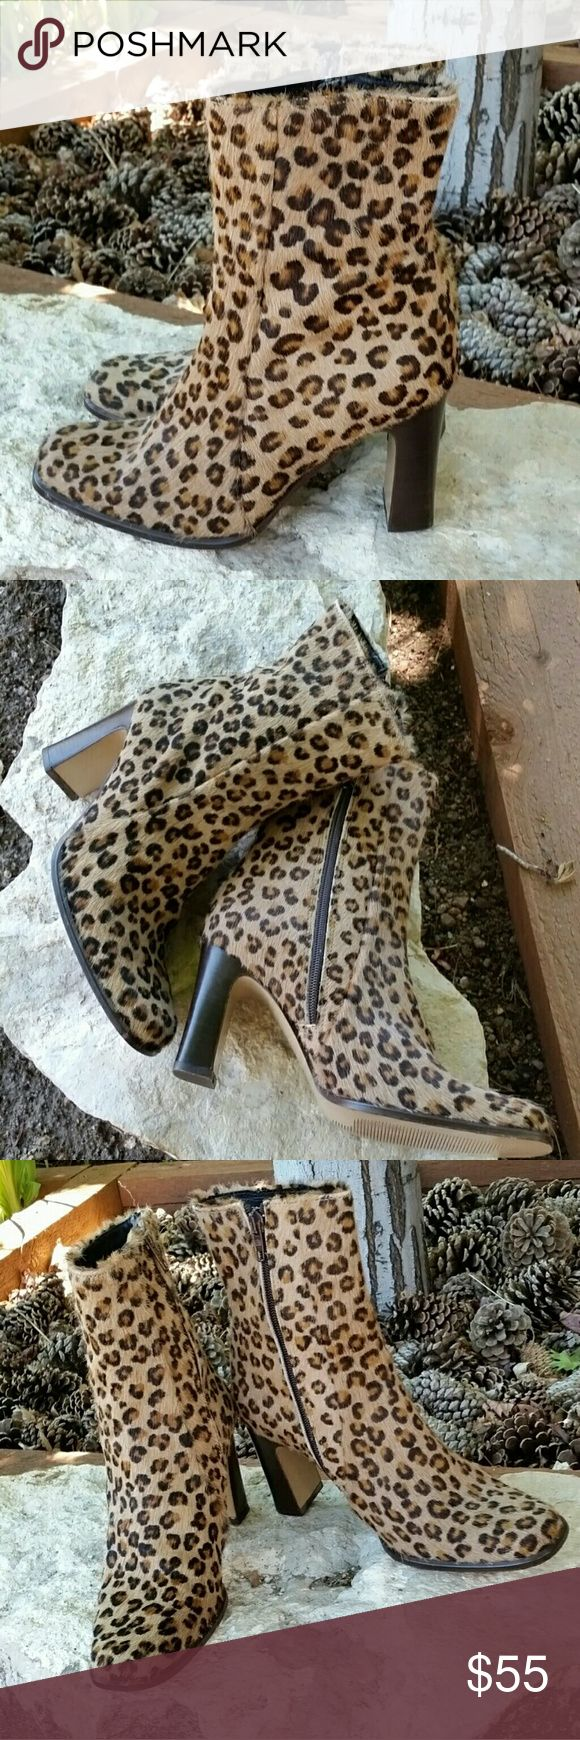 """Charles David Leather Hide Leopard Ankle Boots Charles David Leather Hide Leopard Print Ankle Boots. Made in Italy.  Size 6 1/2.  Zip sides.  2 3/4"""" heels.  Slight sole wear.  Great condition. Charles David Shoes Ankle Boots & Booties"""